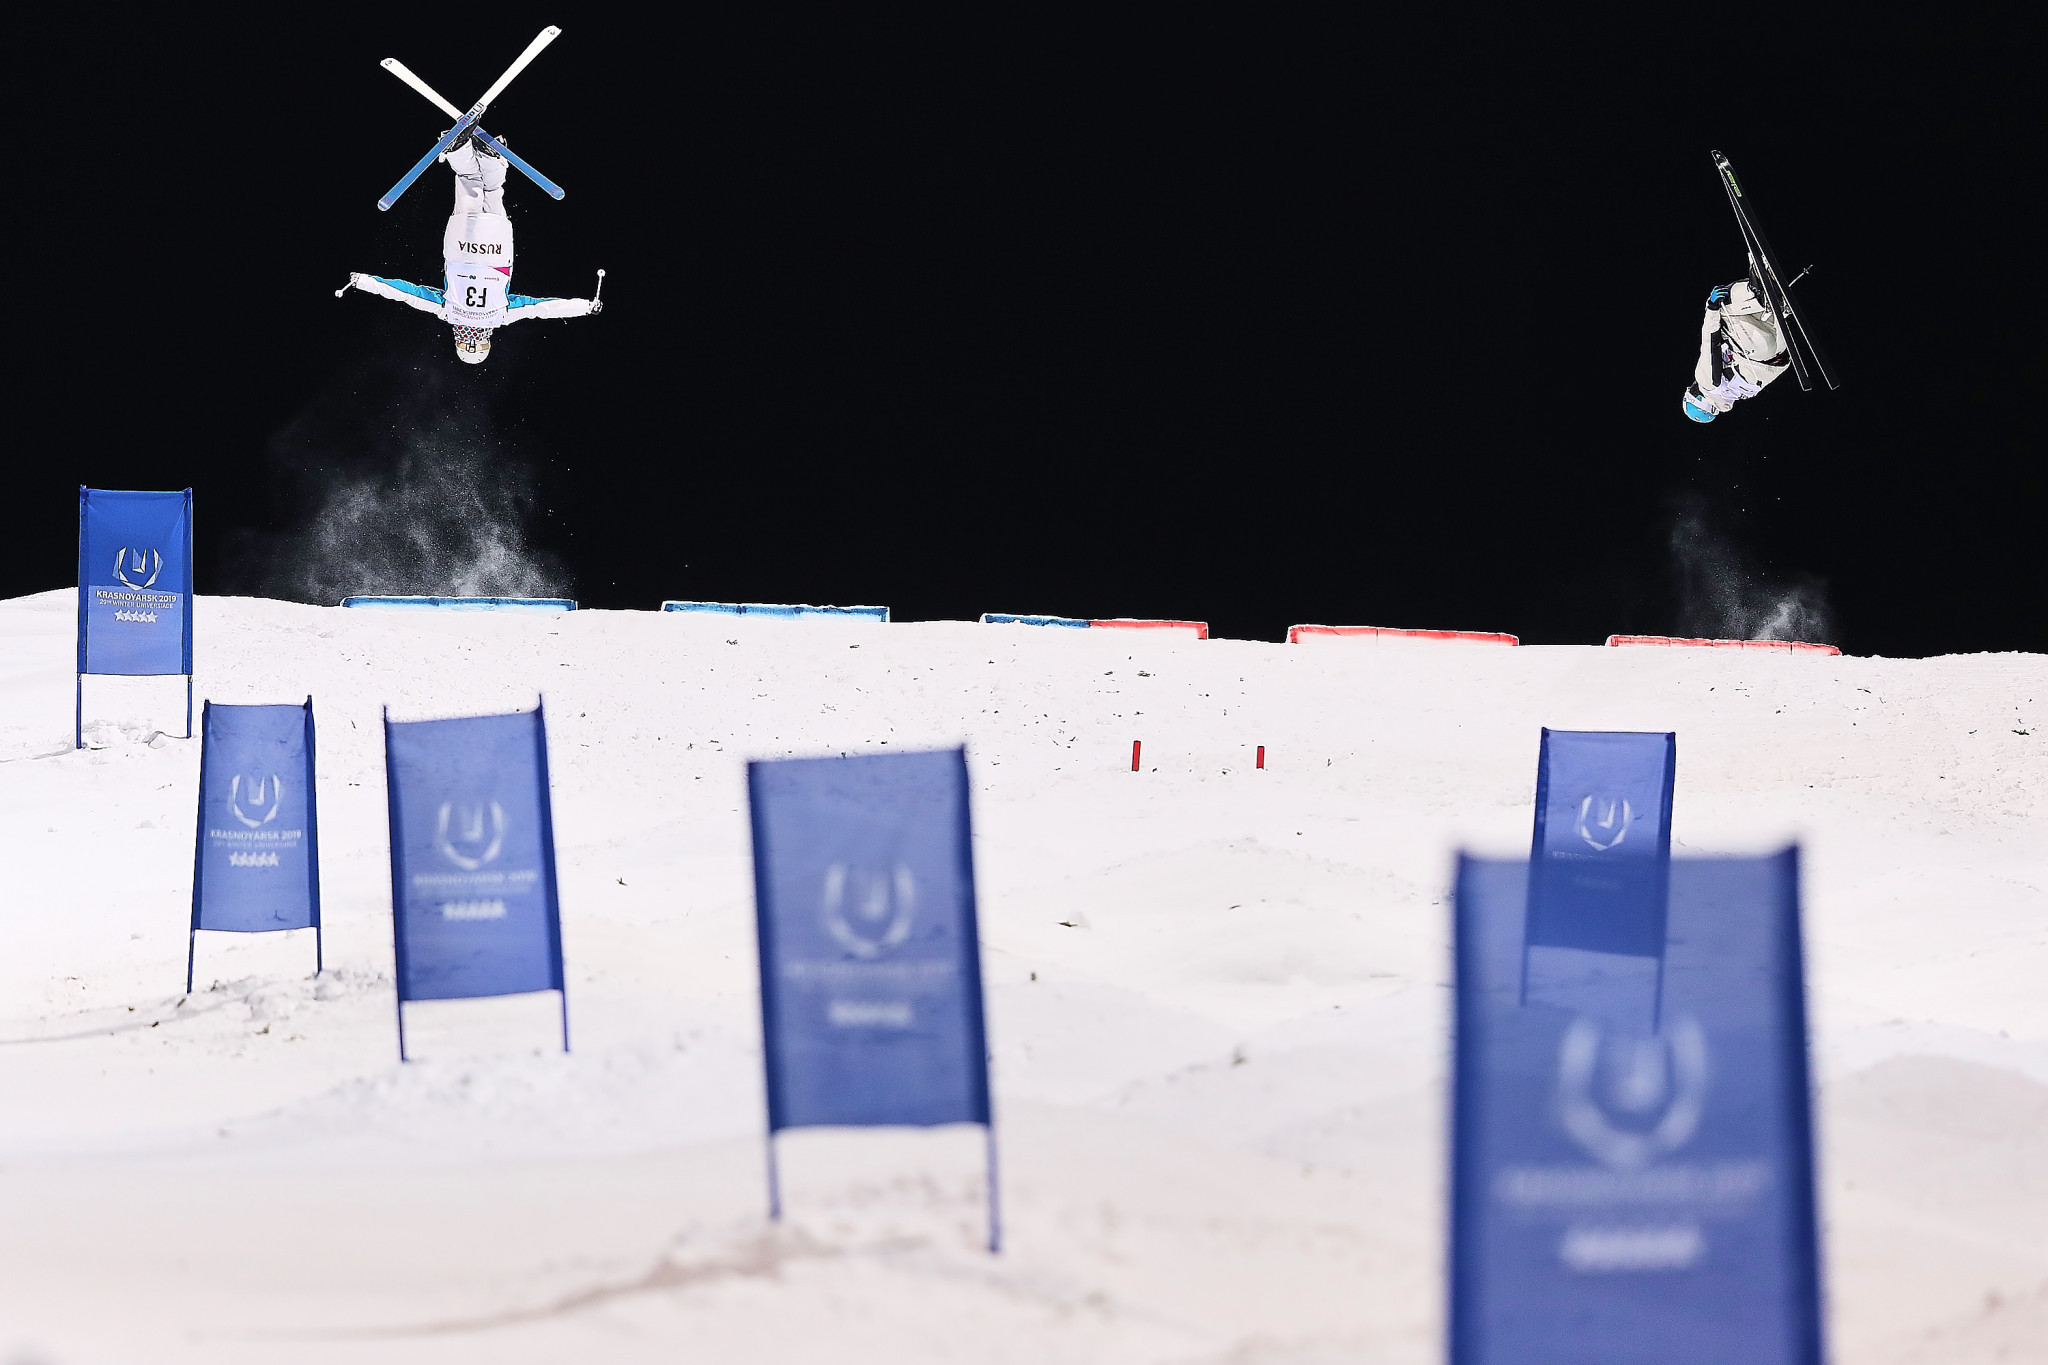 insidethegames is reporting LIVE from the 2019 Winter Universiade in Krasnoyarsk